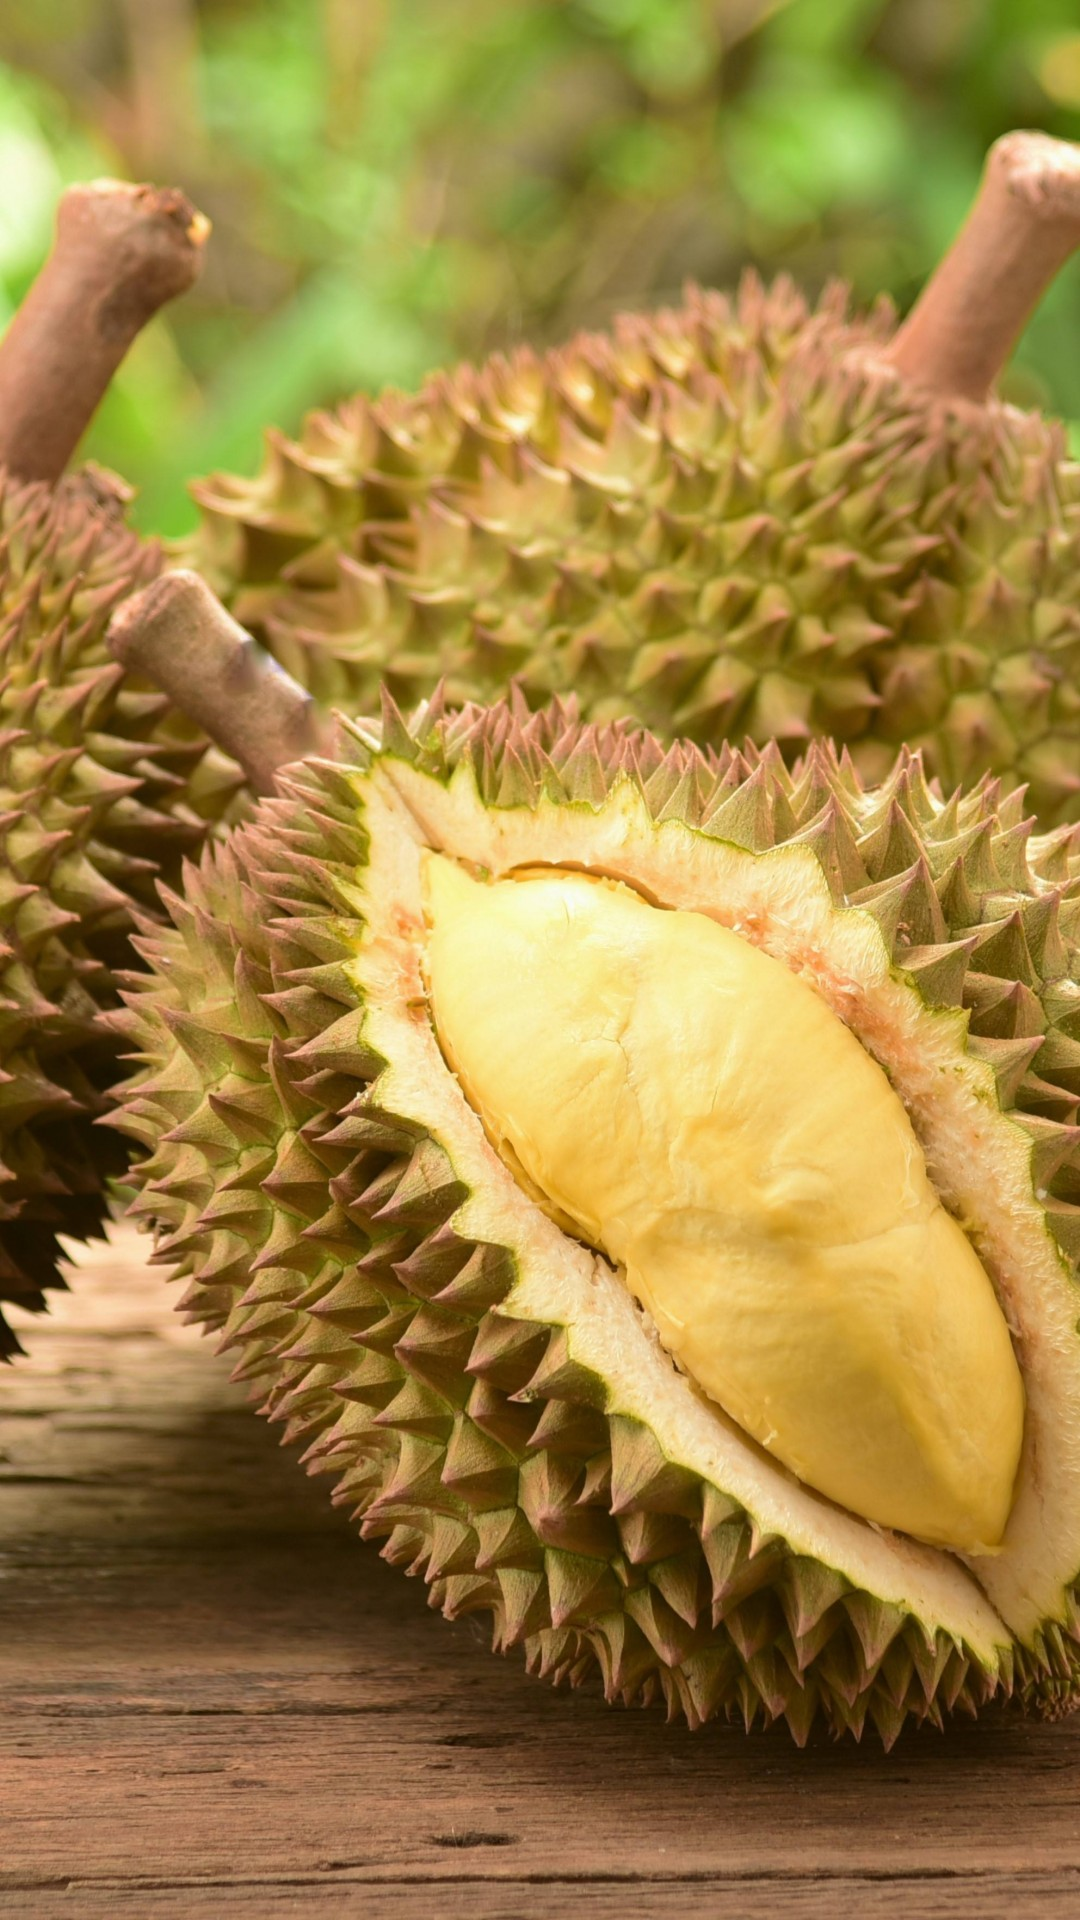 Wallpaper Durian Fruit 5k Food 15342